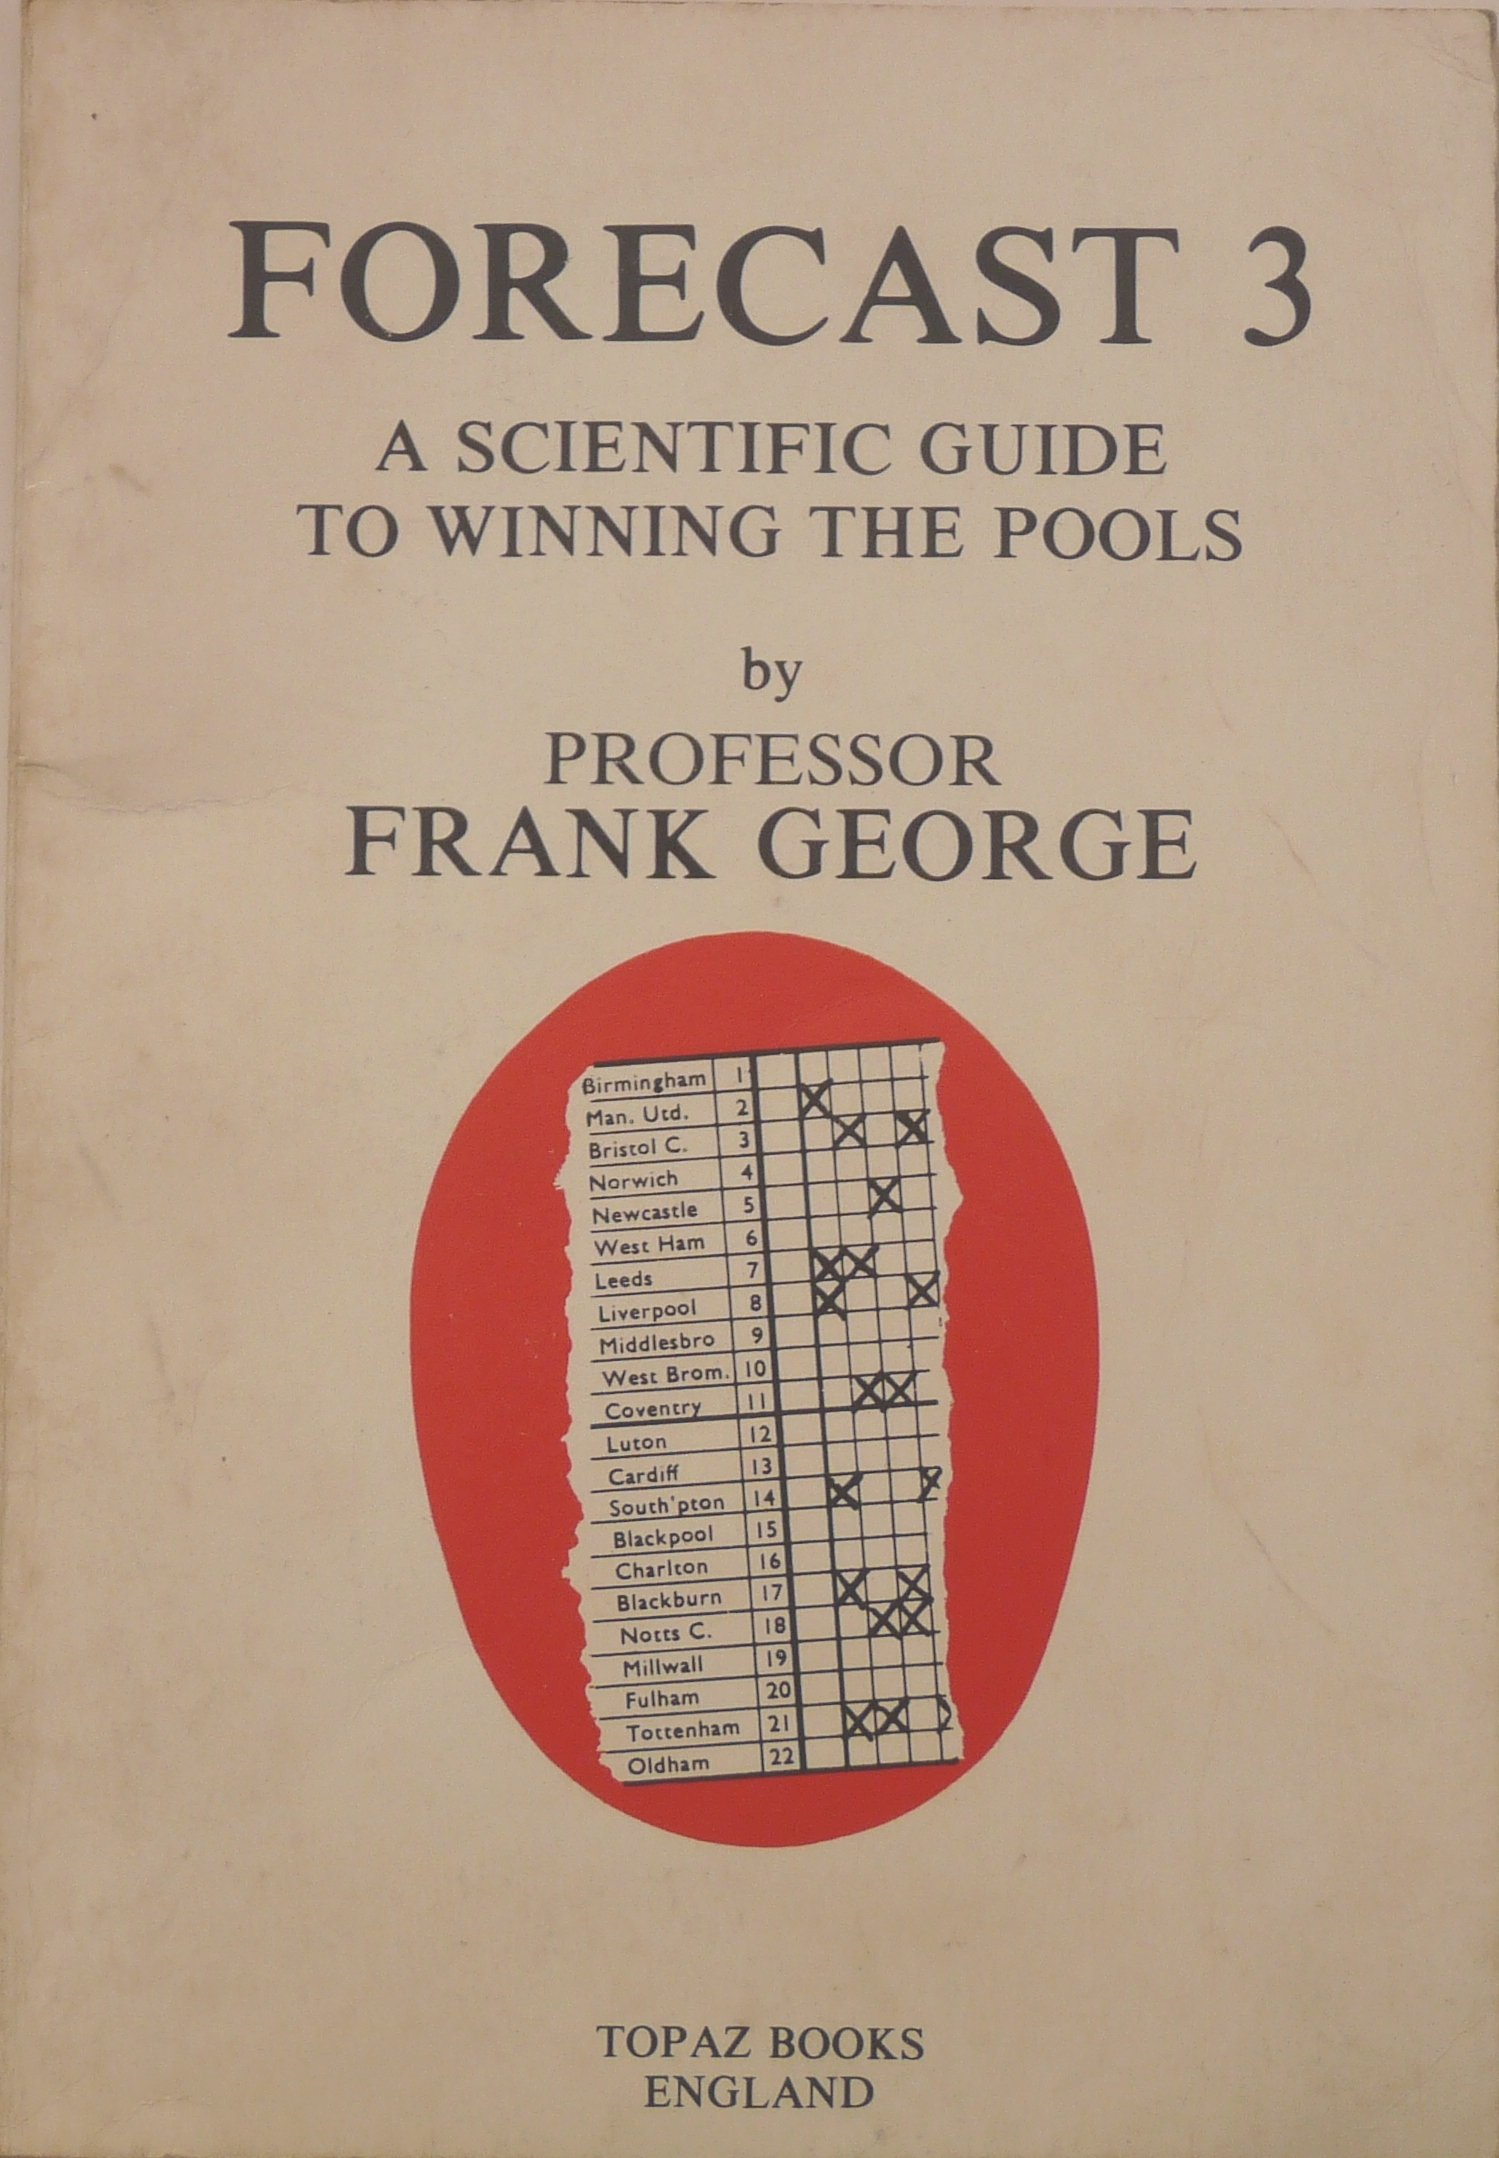 Forecast 3 - A Scientific Guide To Winning The Pools: Amazon